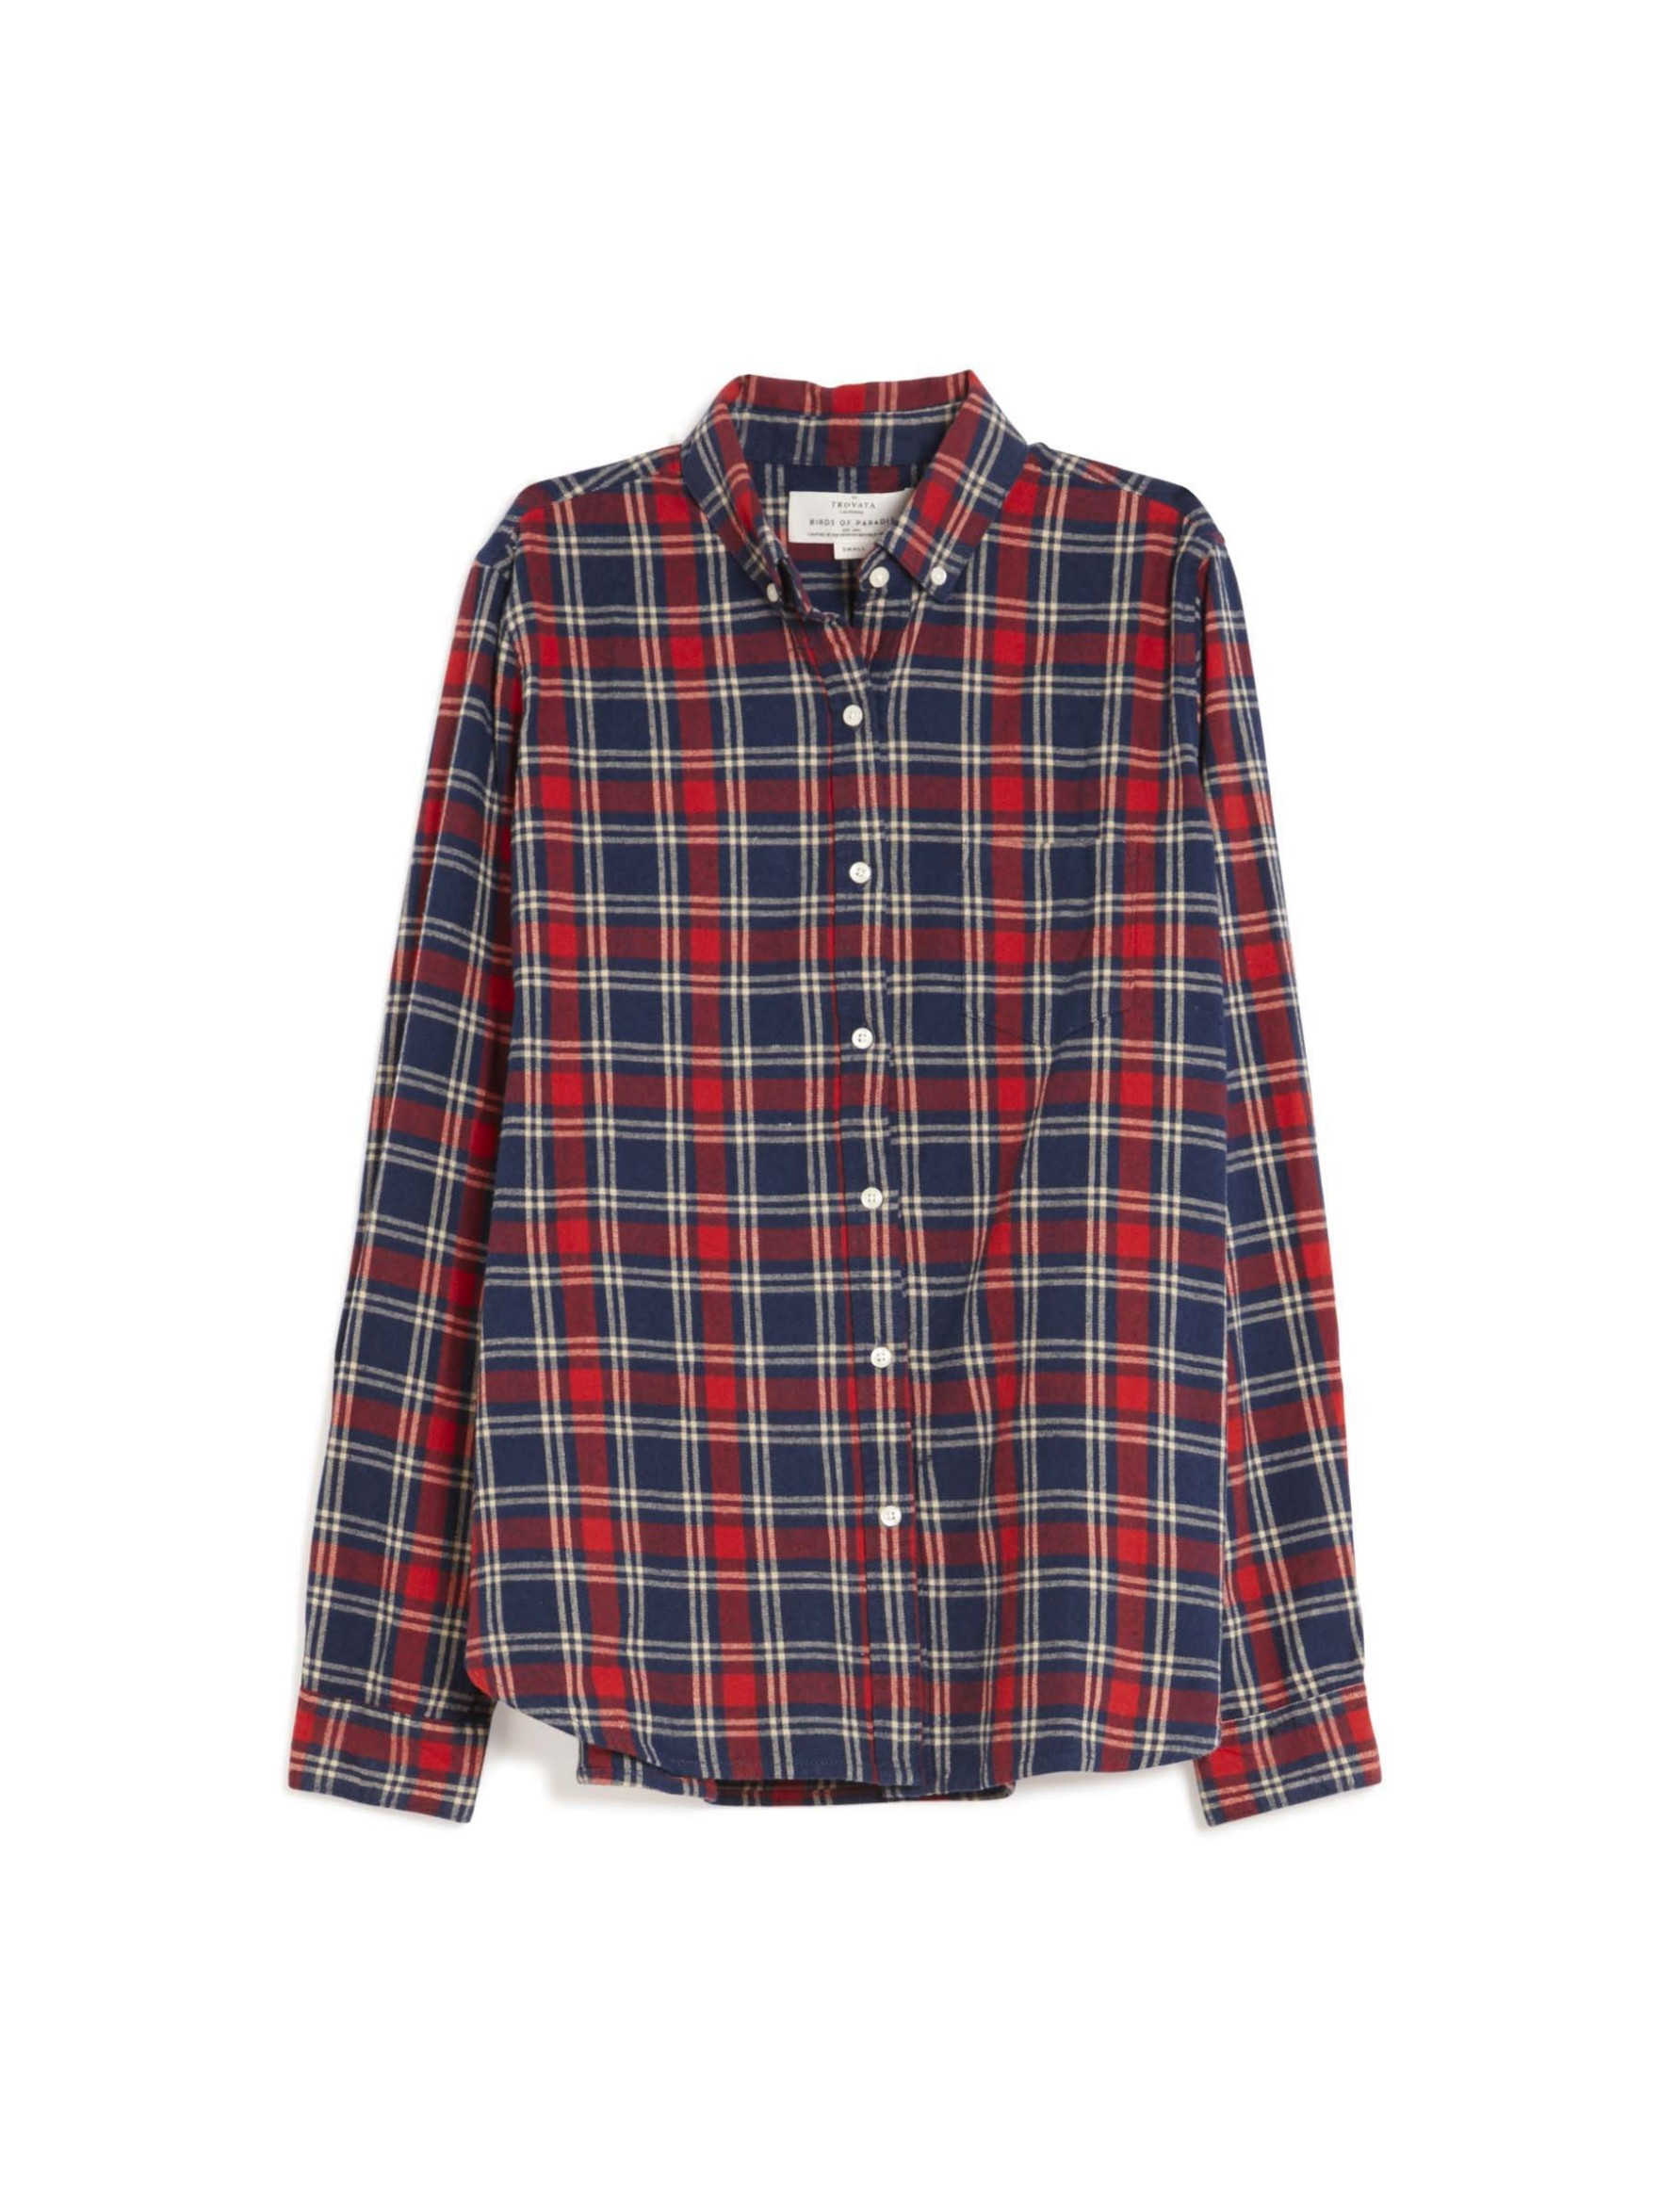 Birds Of Paradis Classic Plaid Shirt In Blue Navy Red